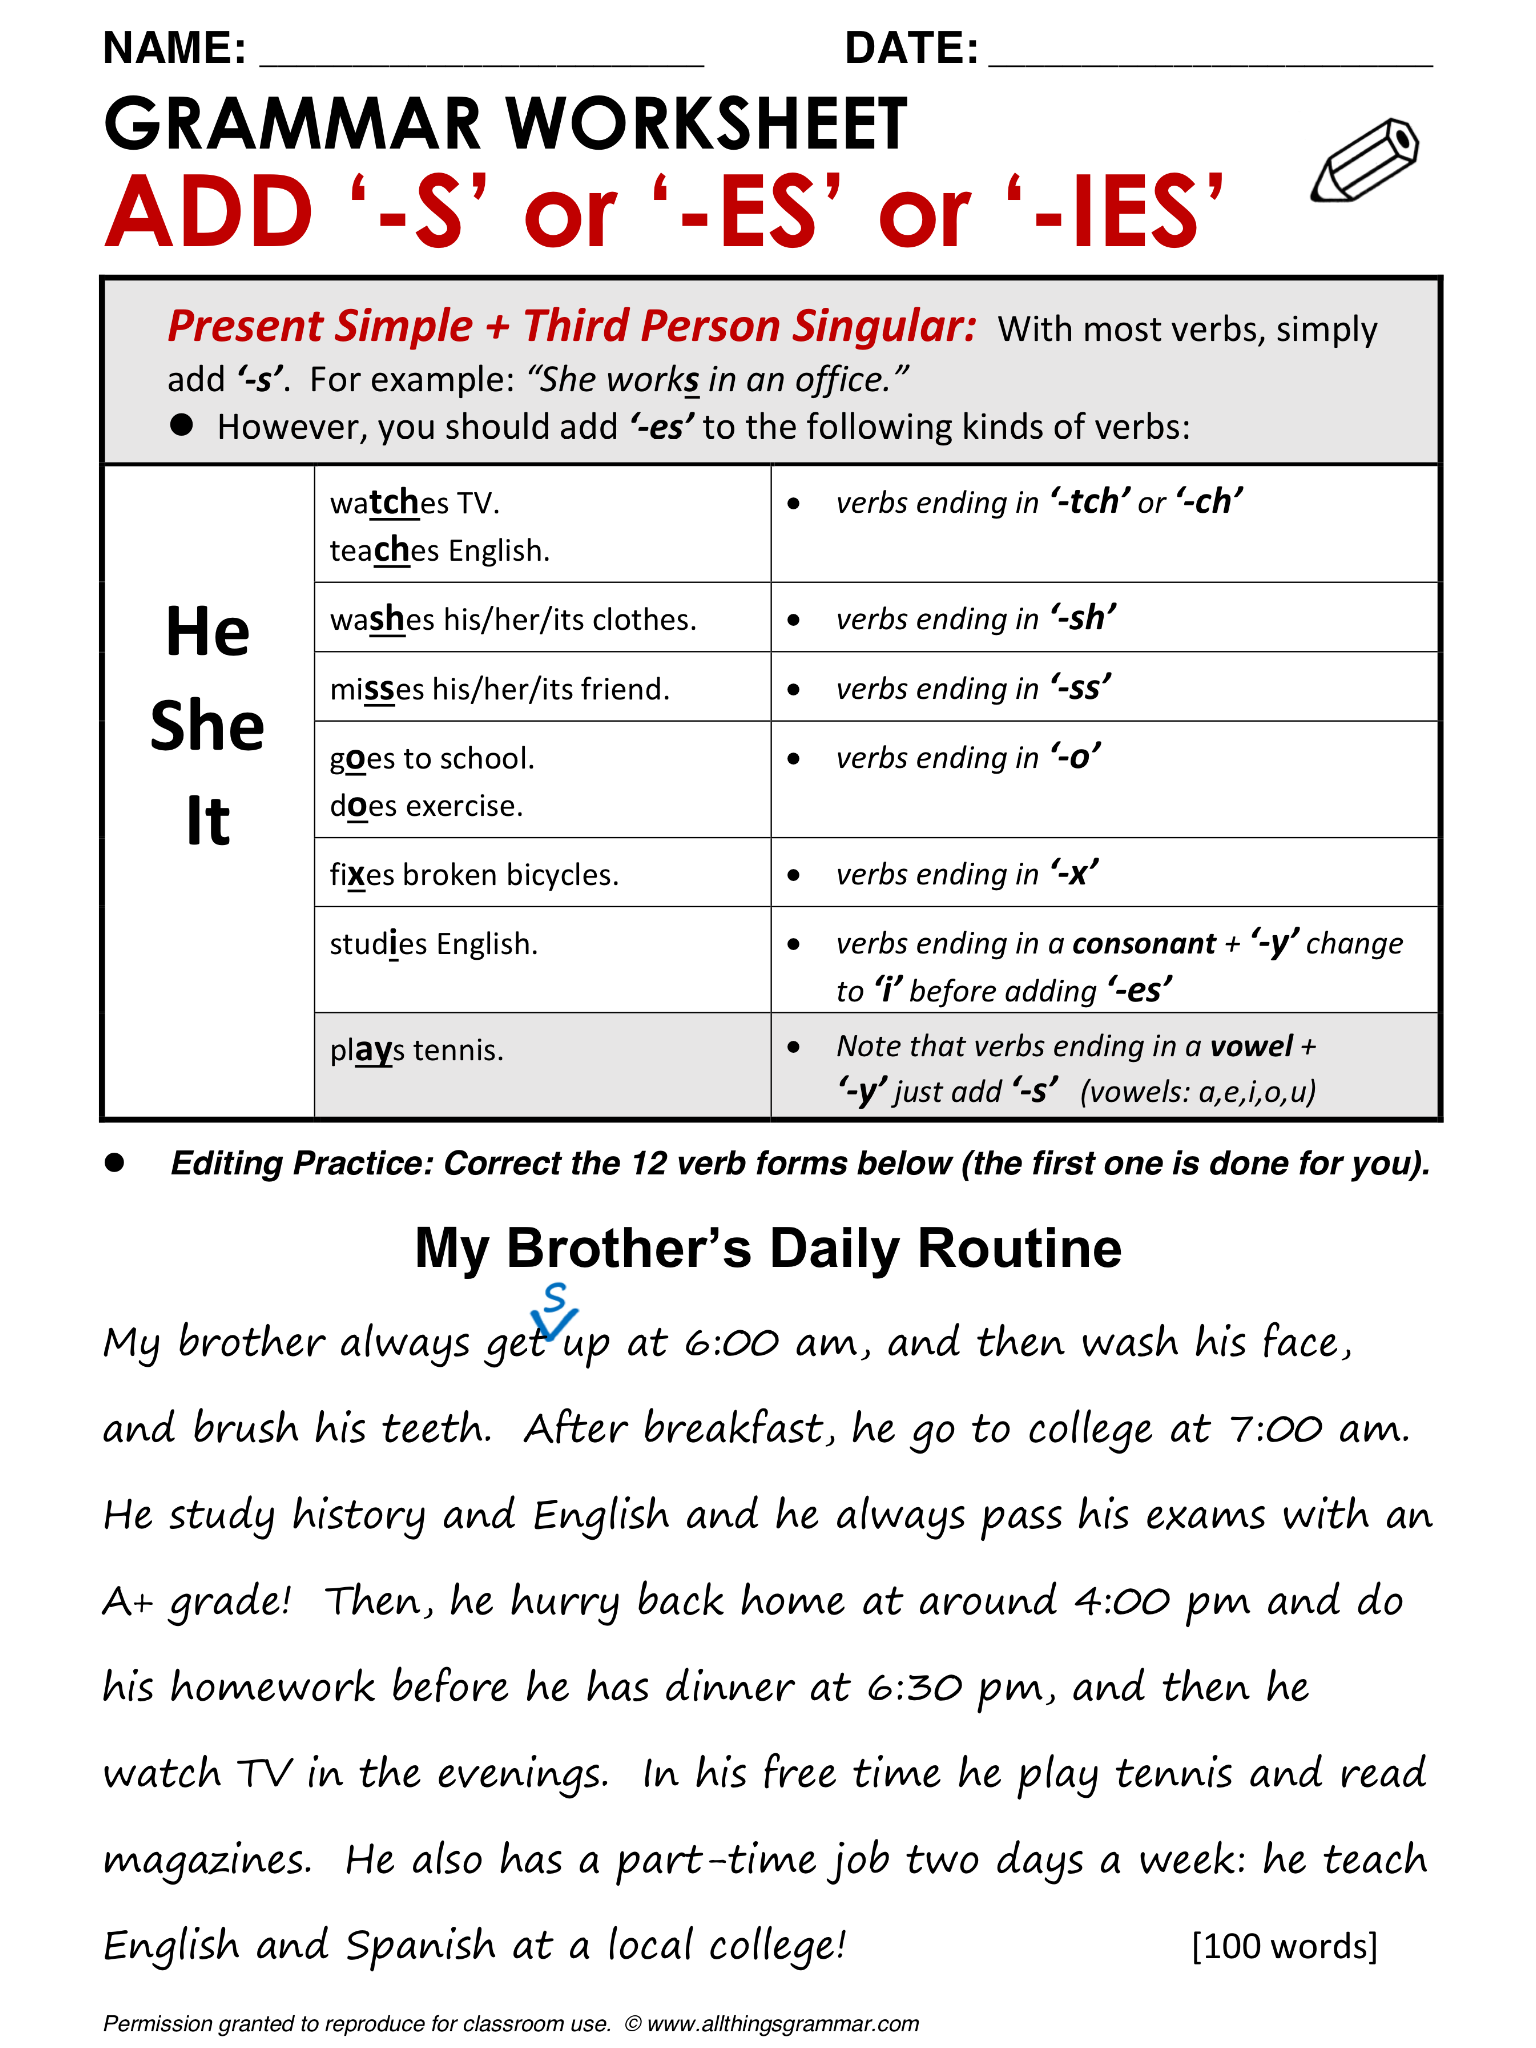 Free Worksheet Grammar Worksheets College 17 best images about 1st grade on pinterest english grammar test lessons and present tense